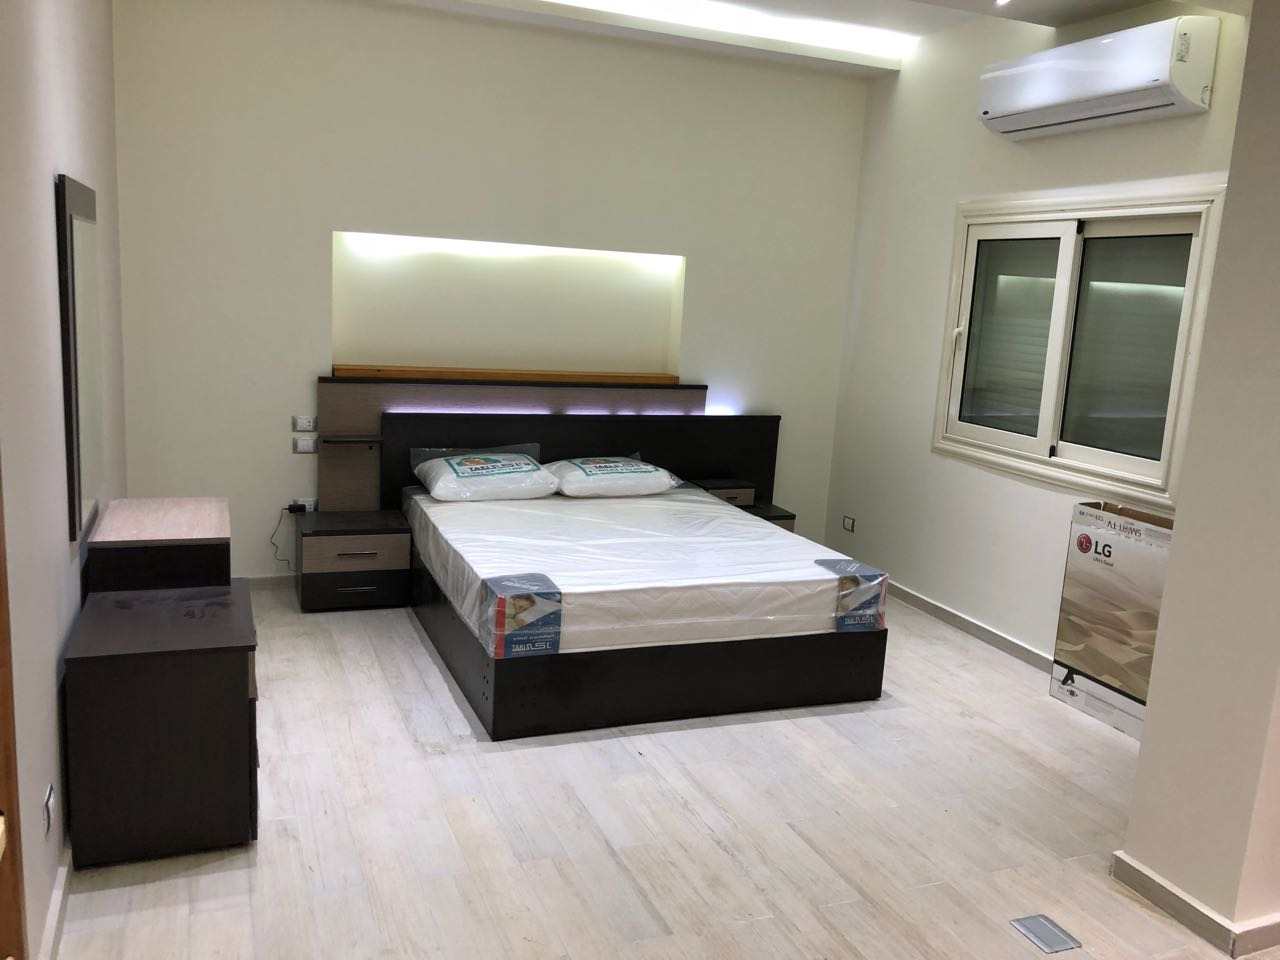 Studios For Rent In Maadi Maadi Sarayat -#16